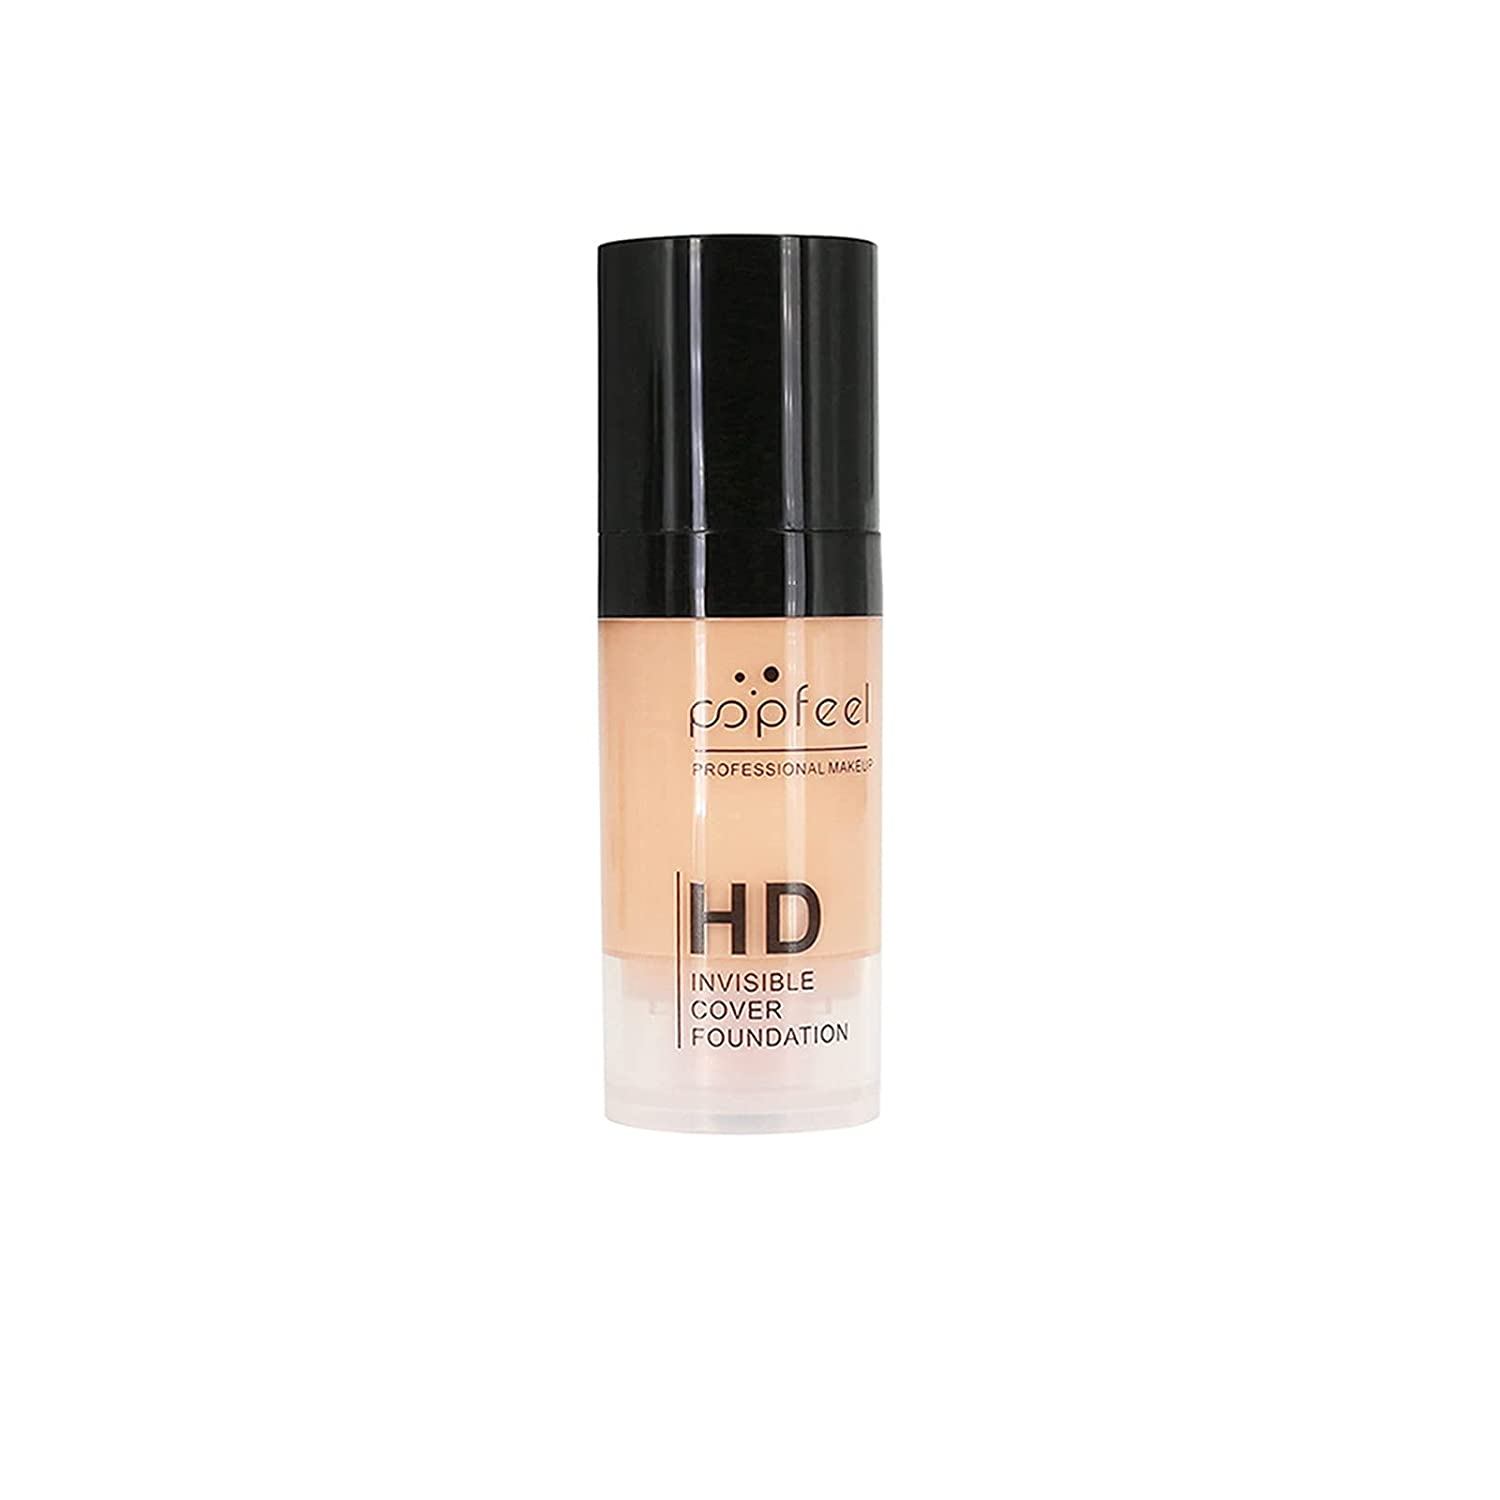 Ranking integrated 1st place Natural Liquid Foundation Concealer San Jose Mall Makeup Cream for